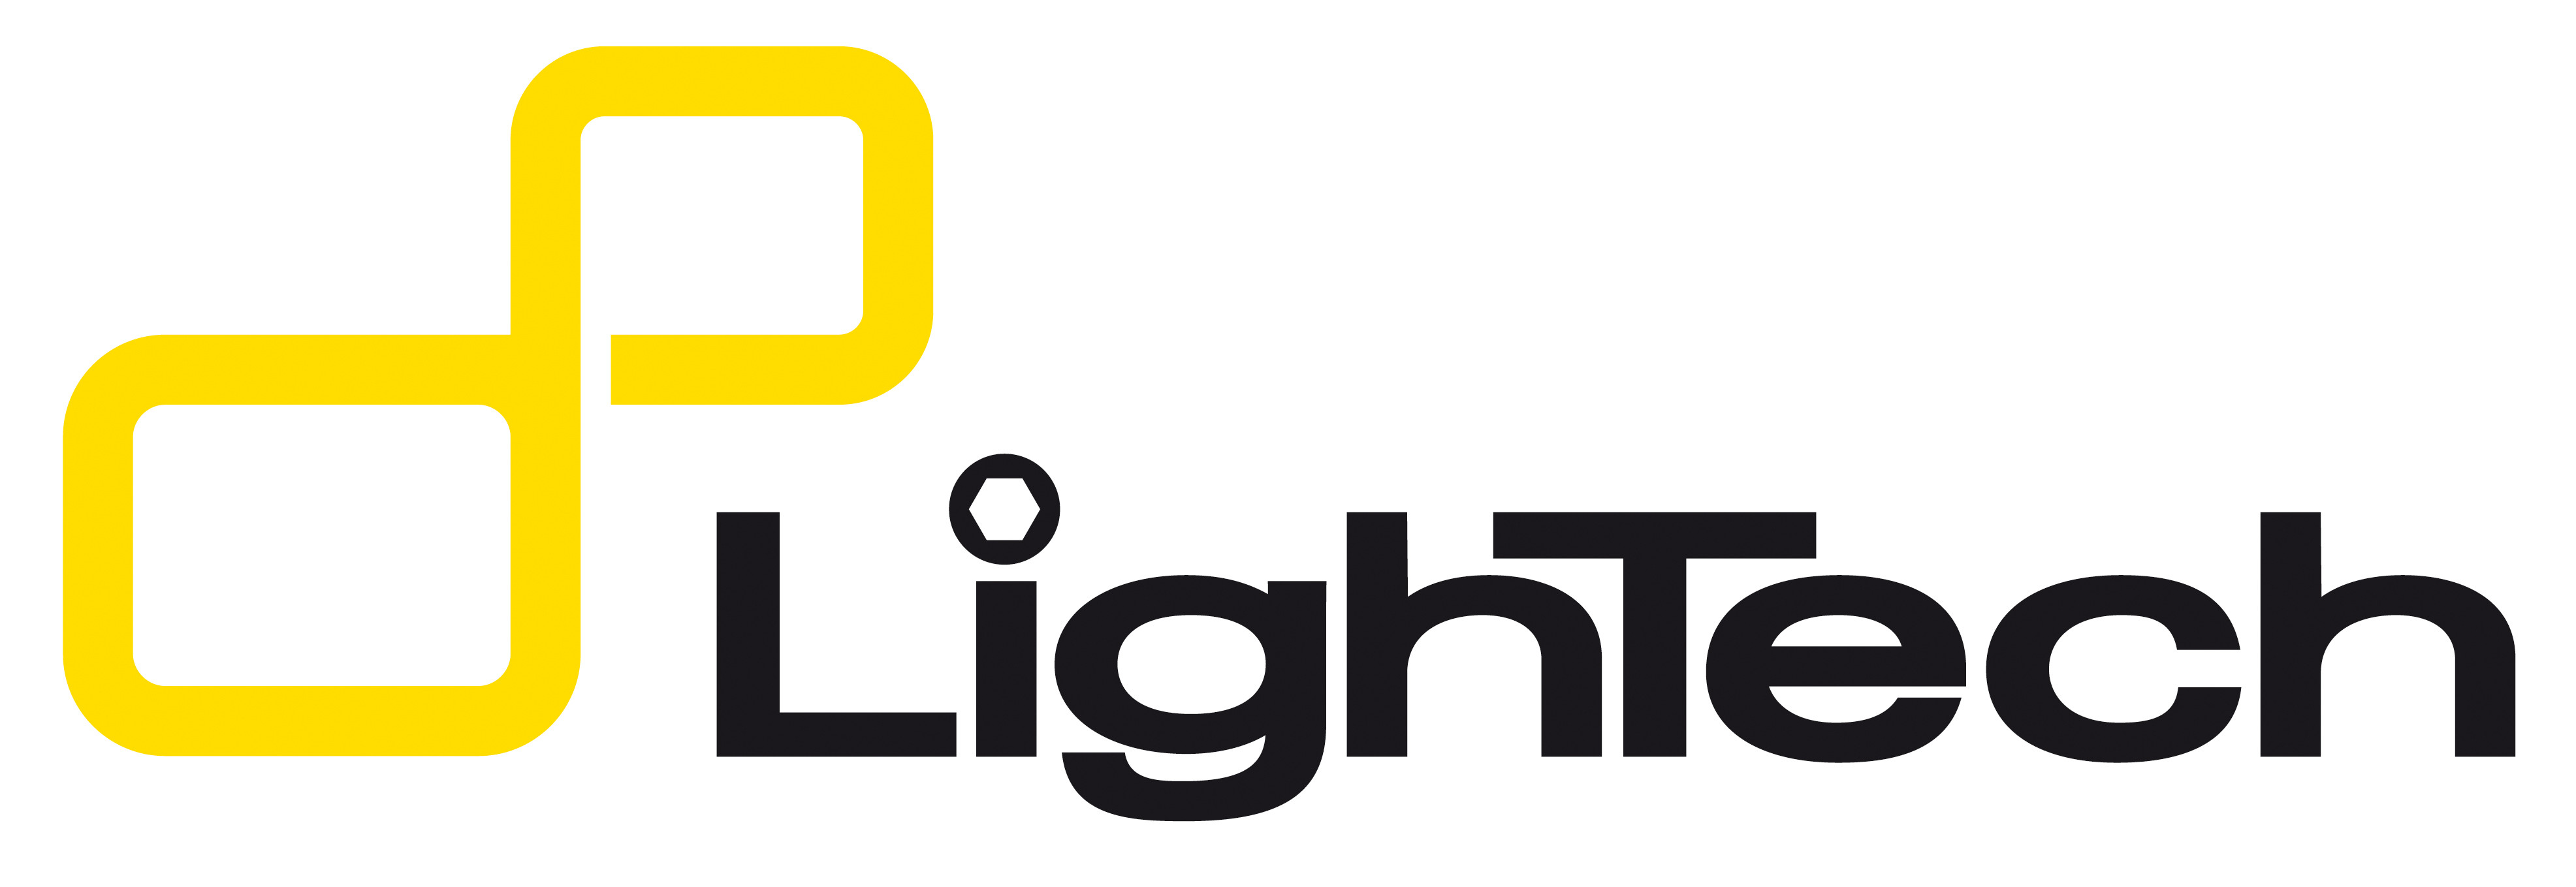 LIGHTECH.jpg